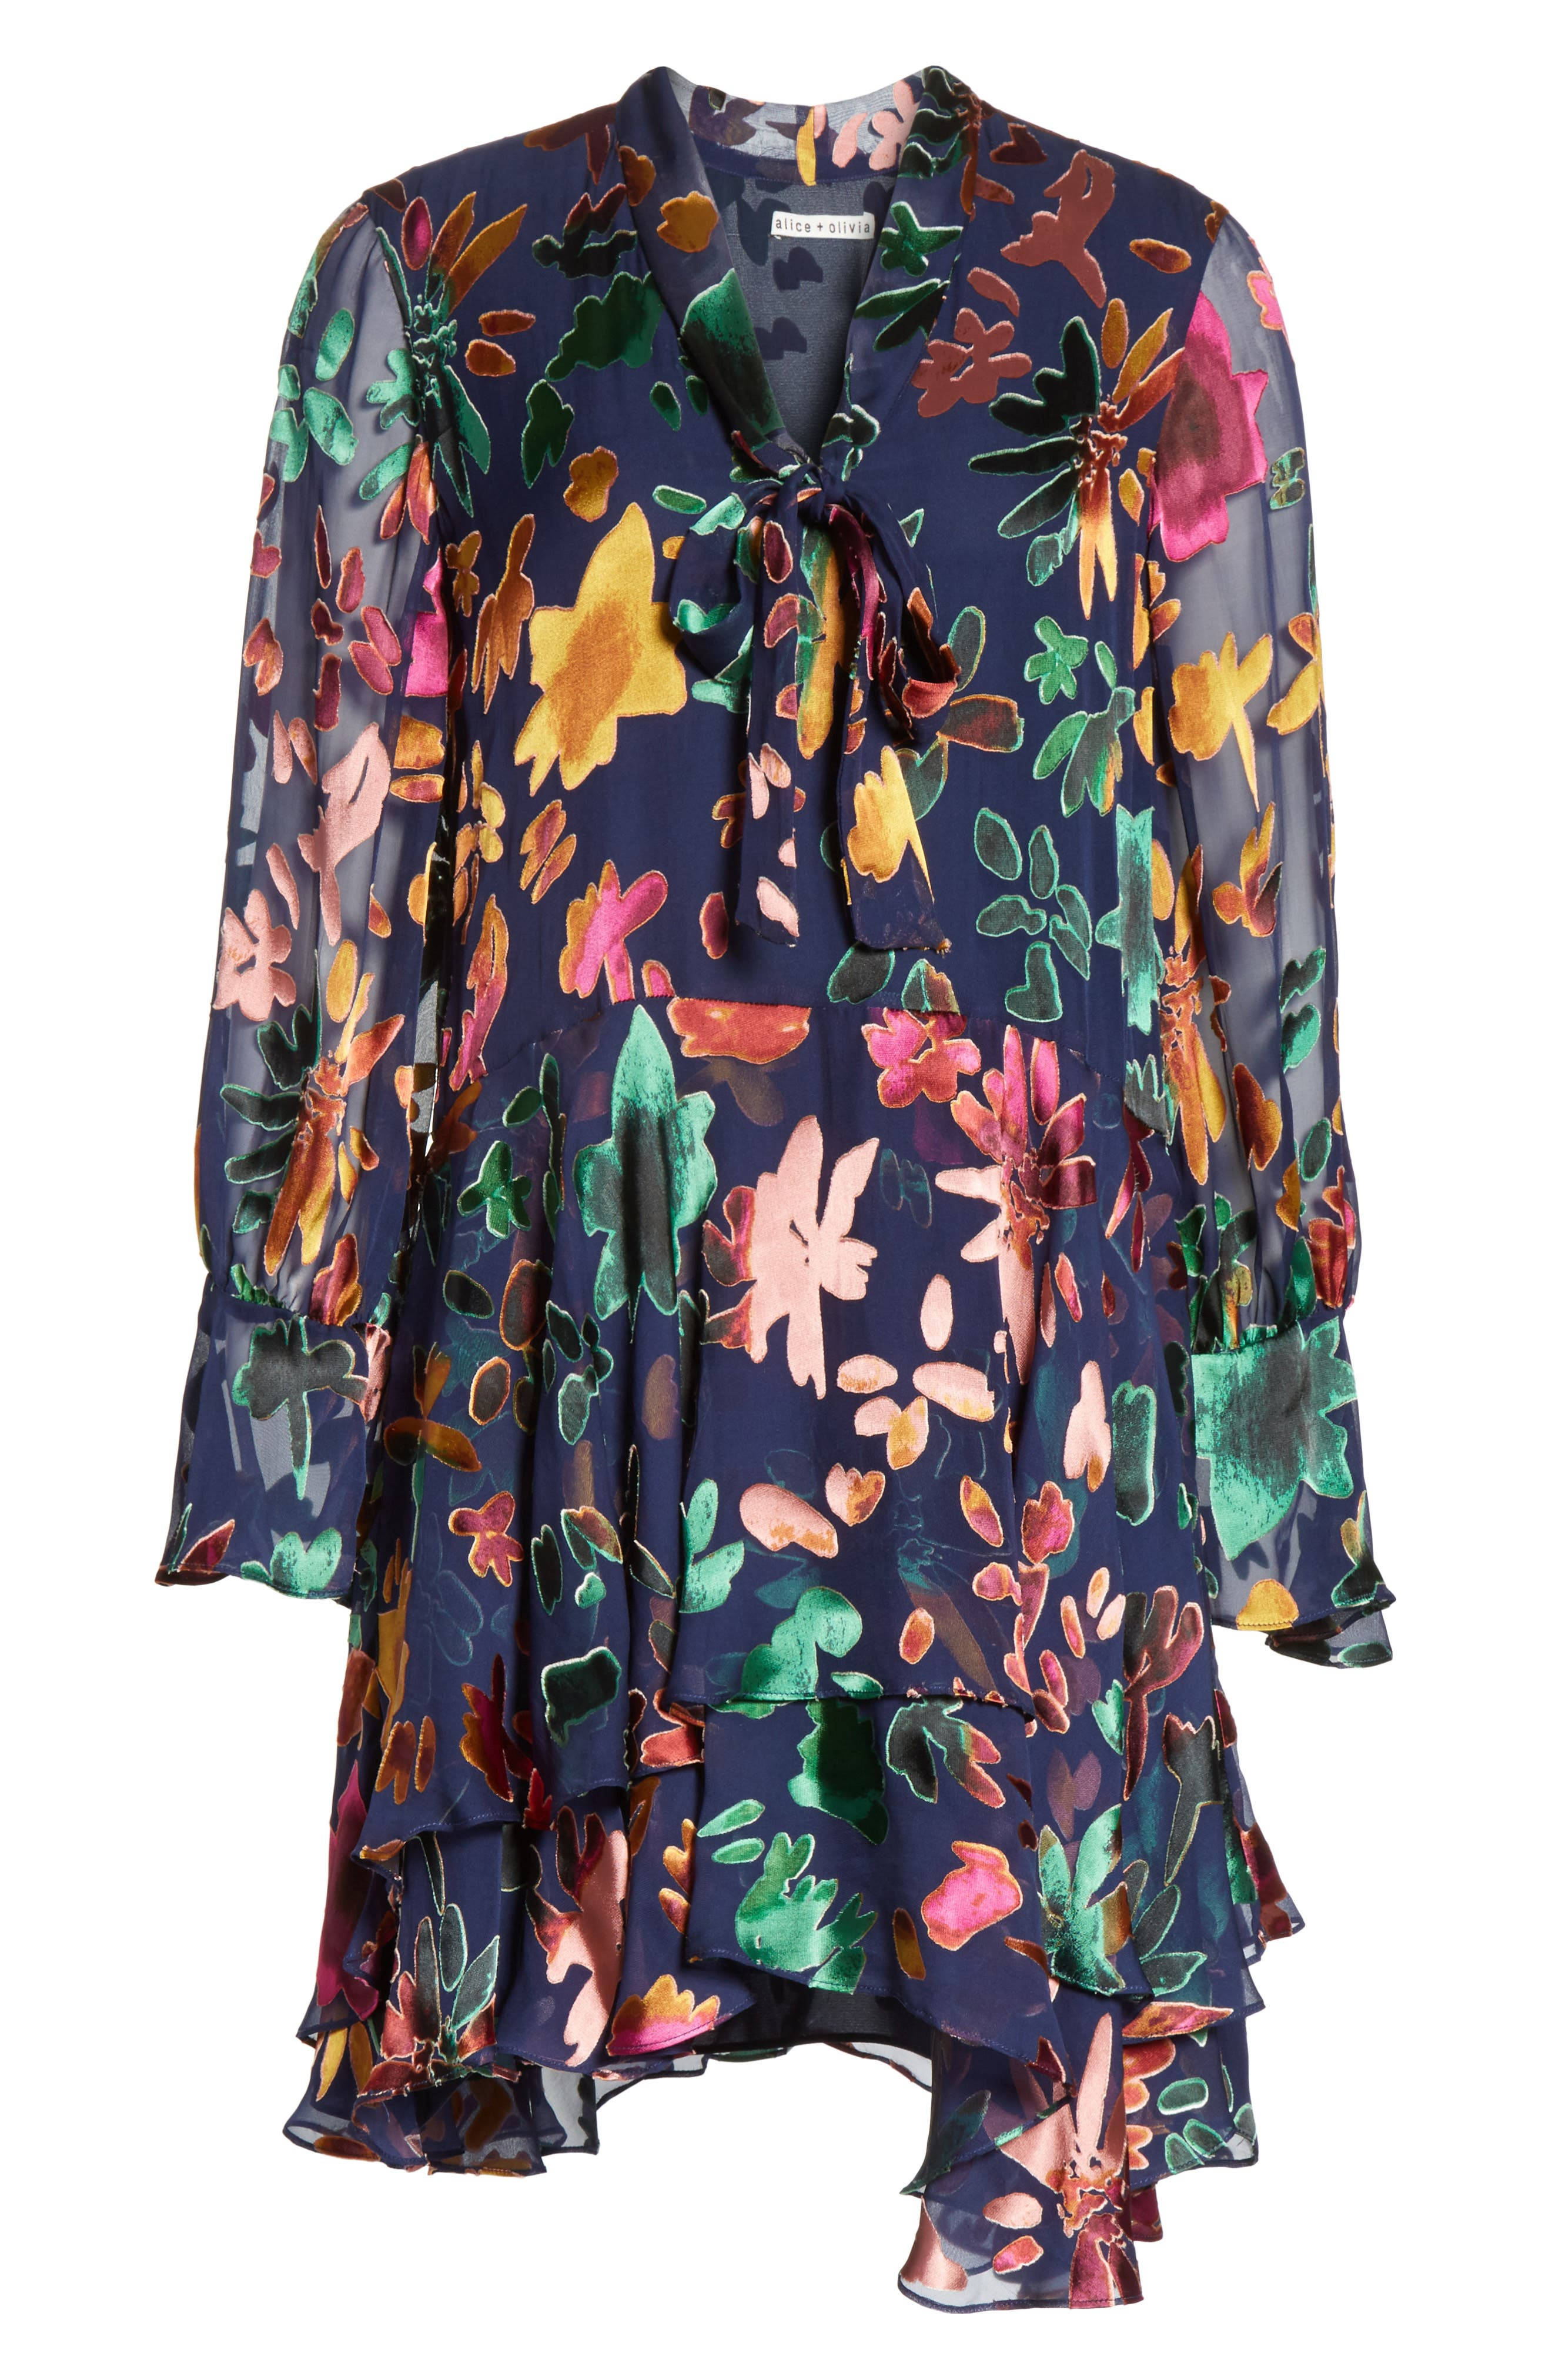 Moore Layered Skirt Tunic Dress,                             Alternate thumbnail 6, color,                             Prisma Floral Sapphire